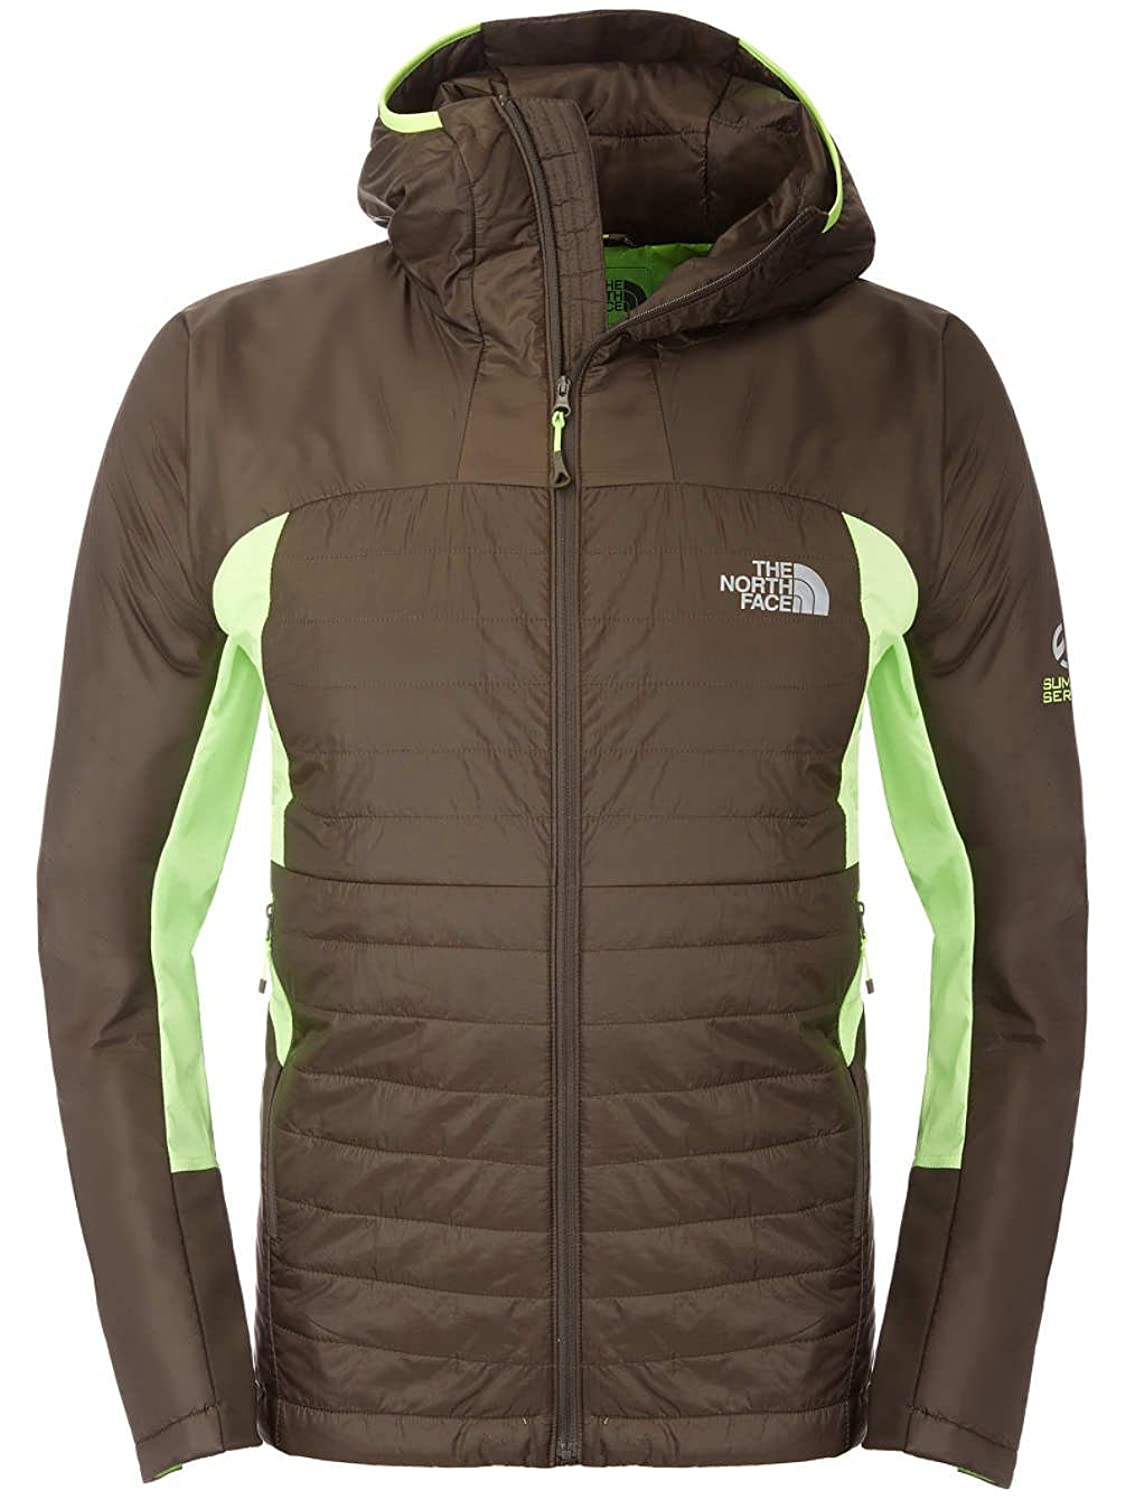 Herren Outdoor Jacke The North Face Dnp Outdoor Jacket günstig